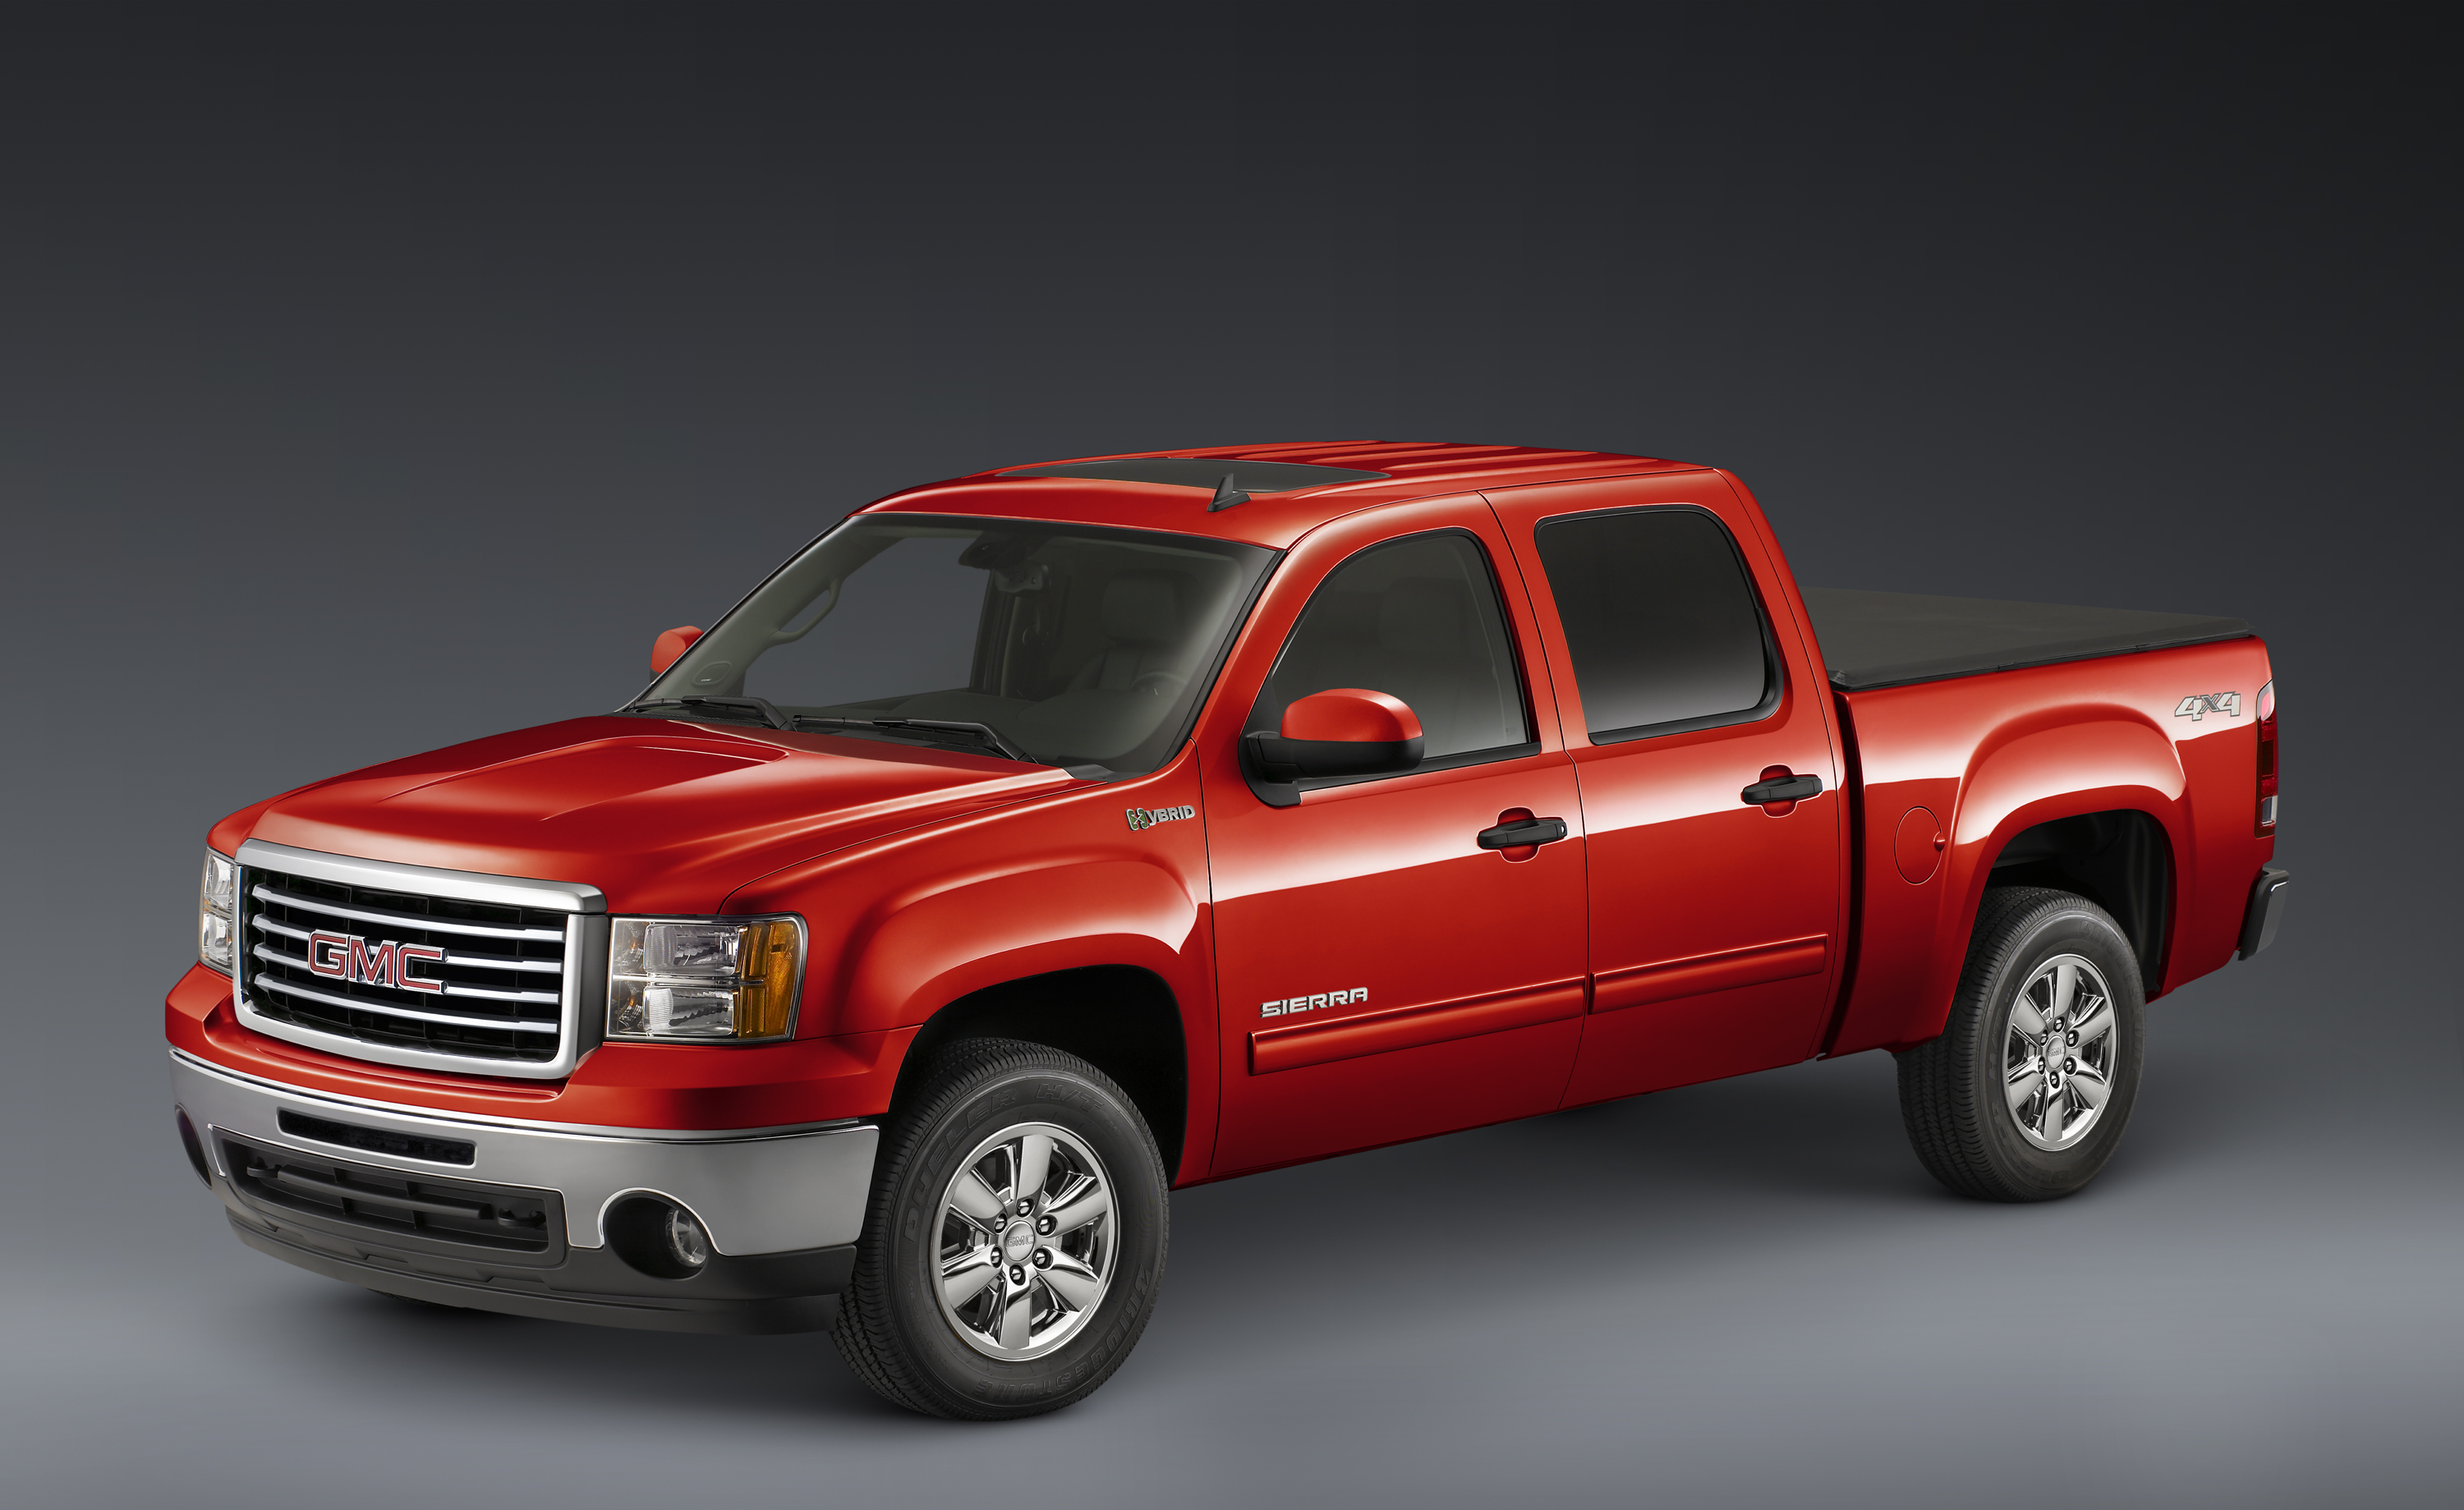 listings sales gmc listing sierra inventory auto lawrence